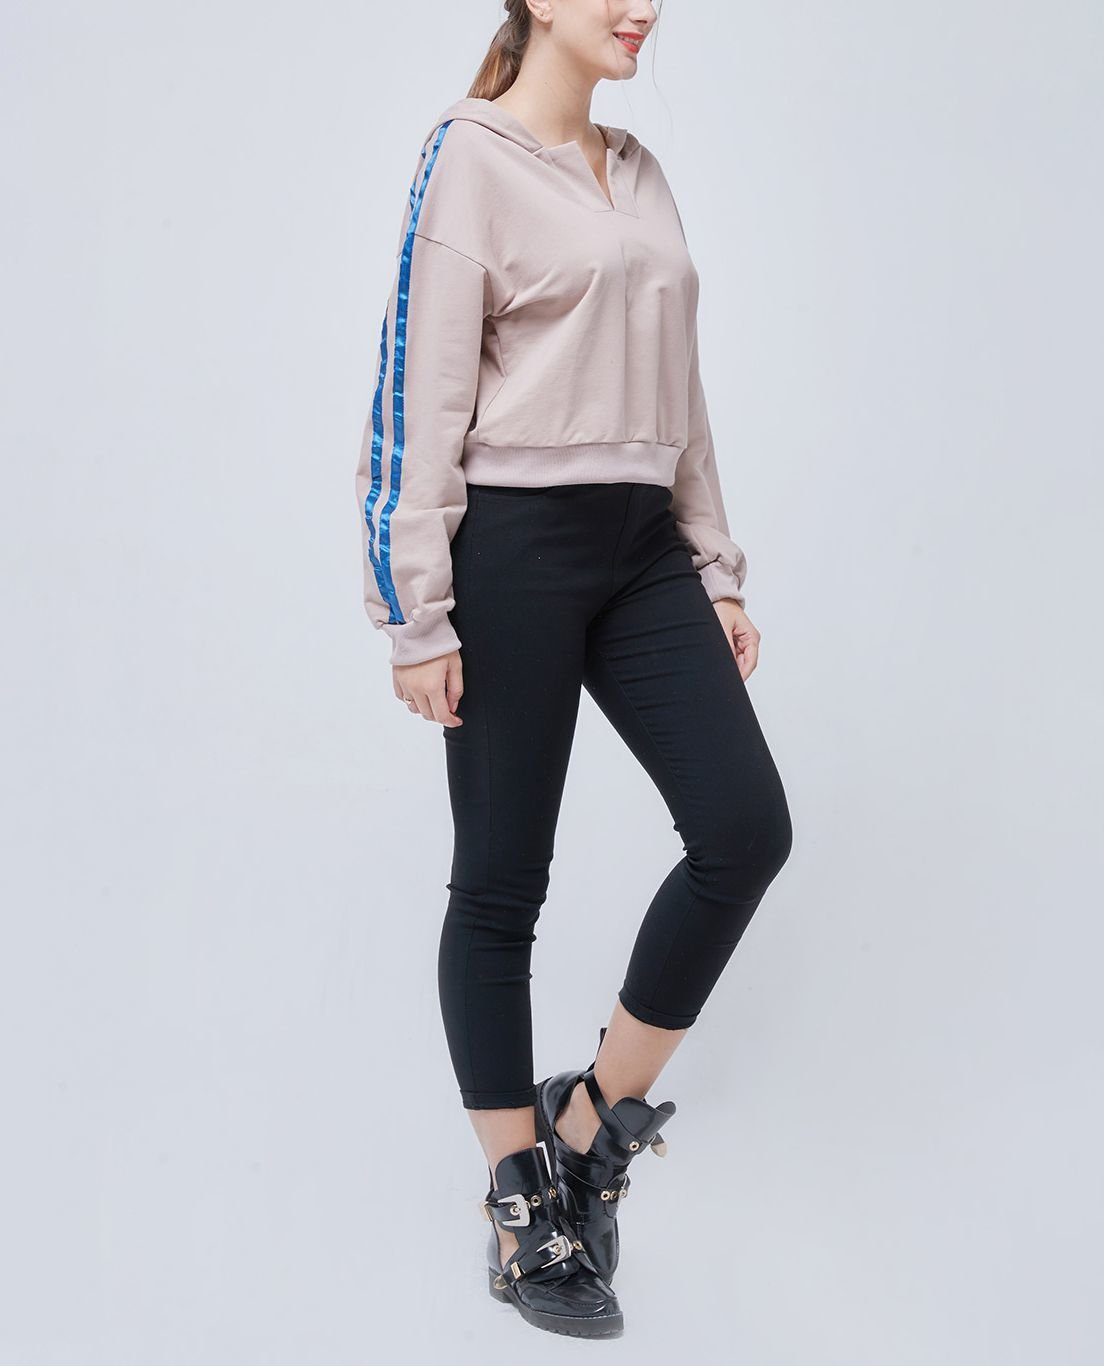 Knit Hoodie Top with Shiny Stripes on Sleeves